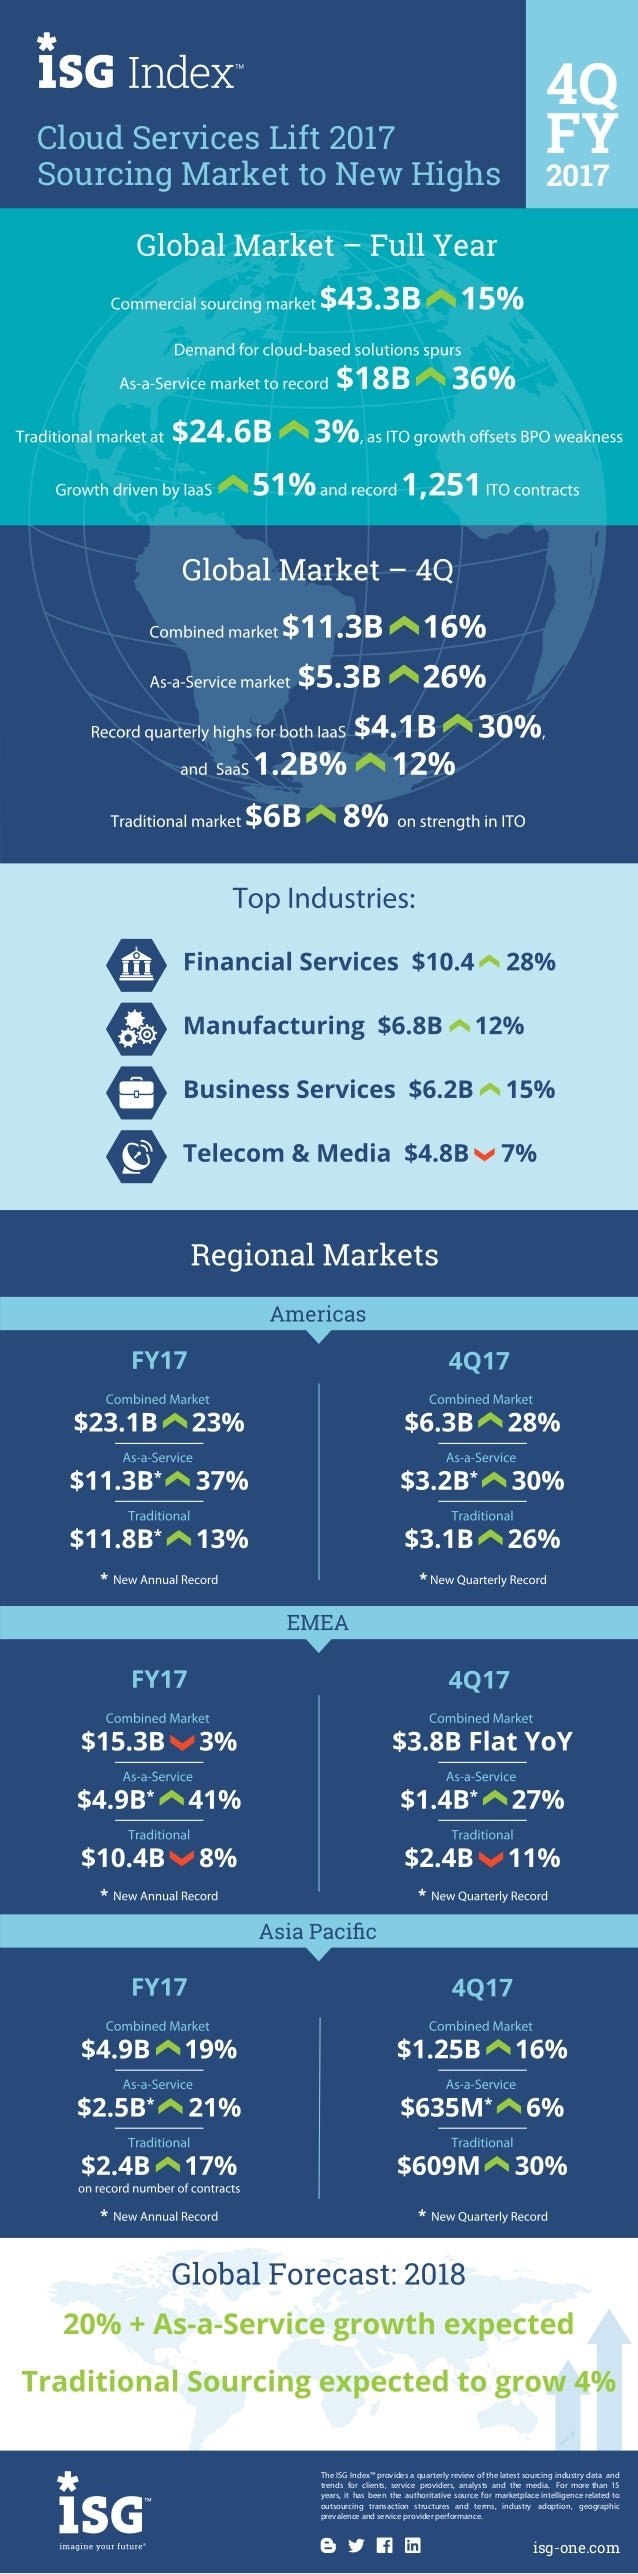 Cloud Services Lift 2017 Sourcing Market to New Highs 4Q FY 2017 The ISG Index™ provides a quarterly review of the latest ...